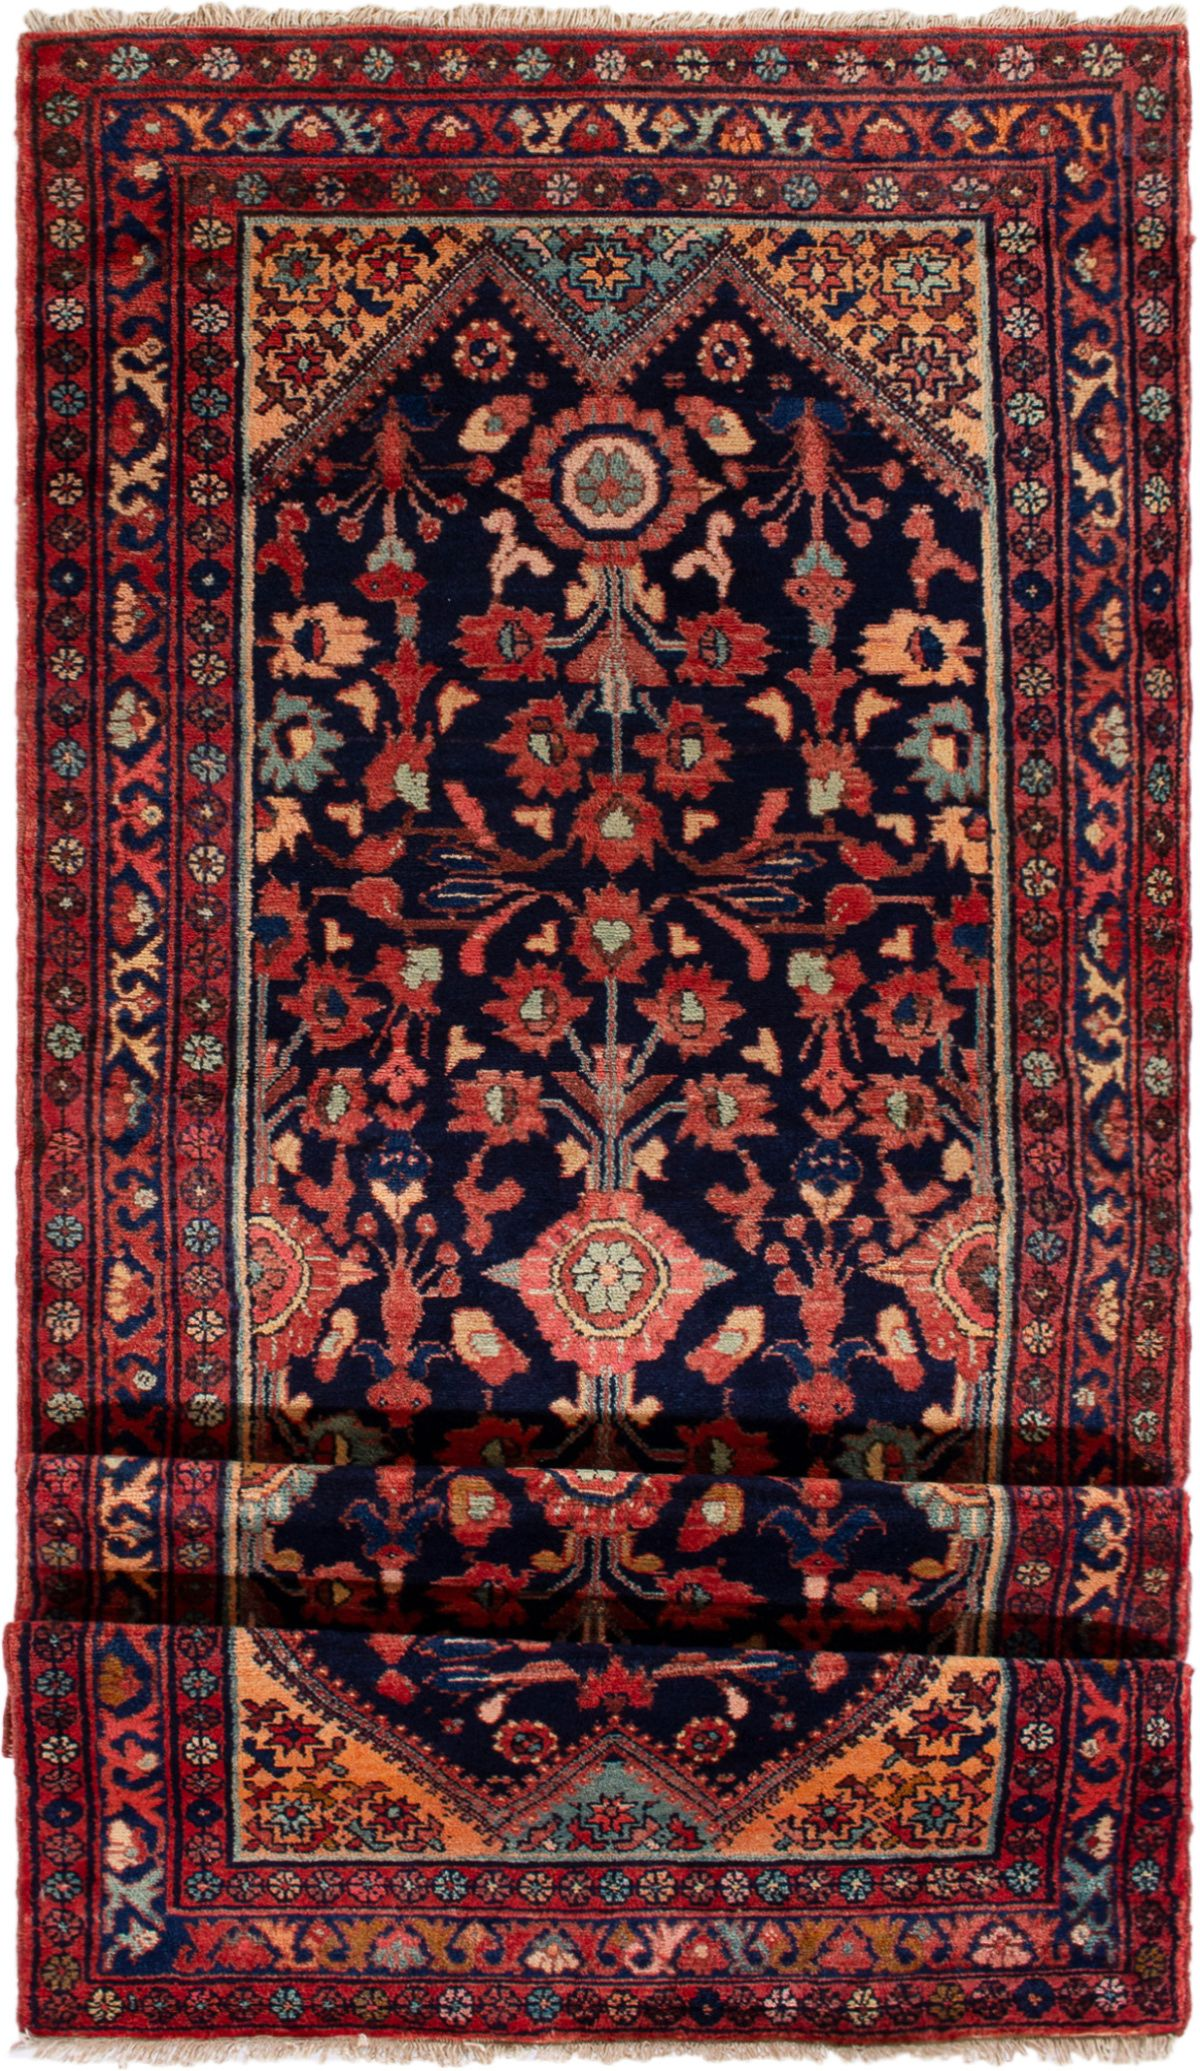 Luri 4 1 X 10 5 In 2020 Rugs Persian Rug Rugs On Carpet